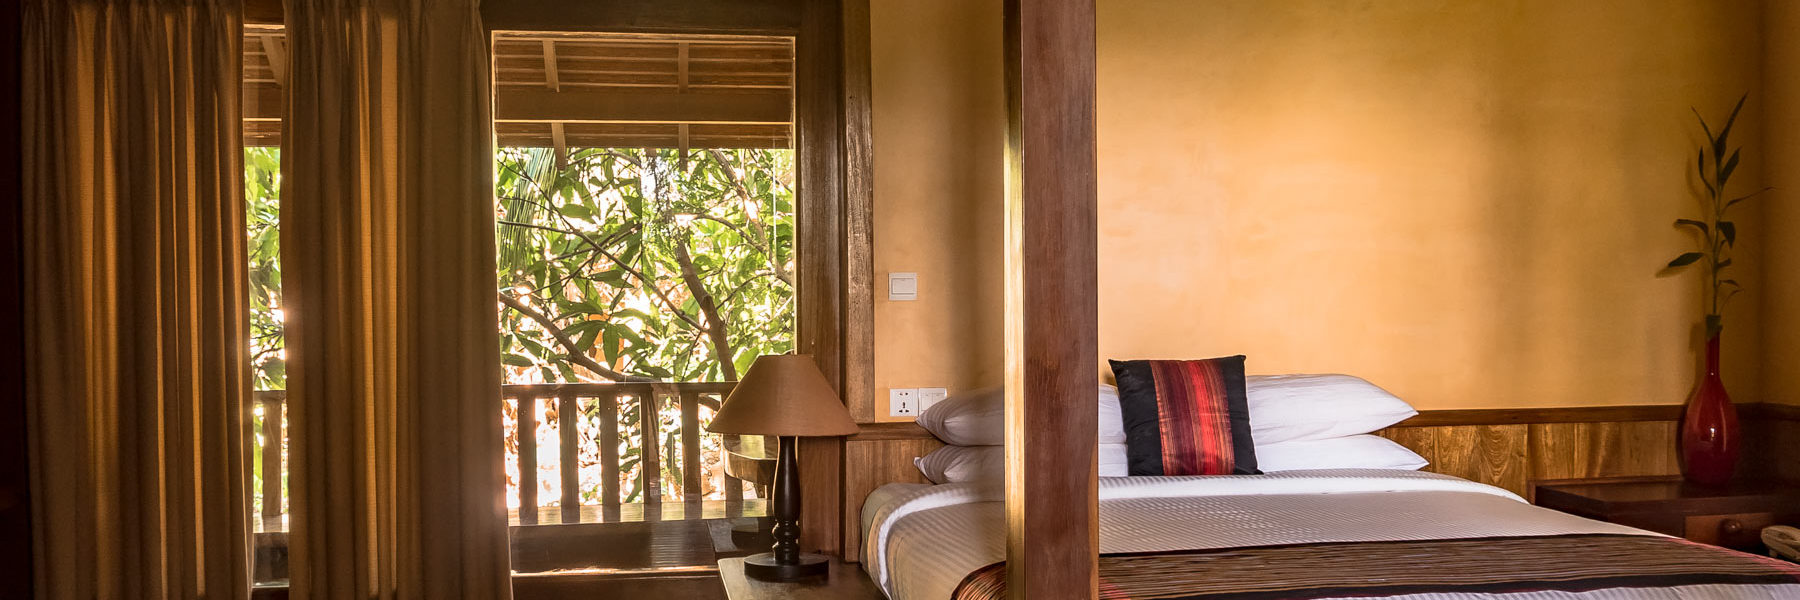 Pool Villa bedroom with a double bed, air conditioner and private terrasse to tropical vegetation view in Veranda Natural Resort, Kep - Cambodia.